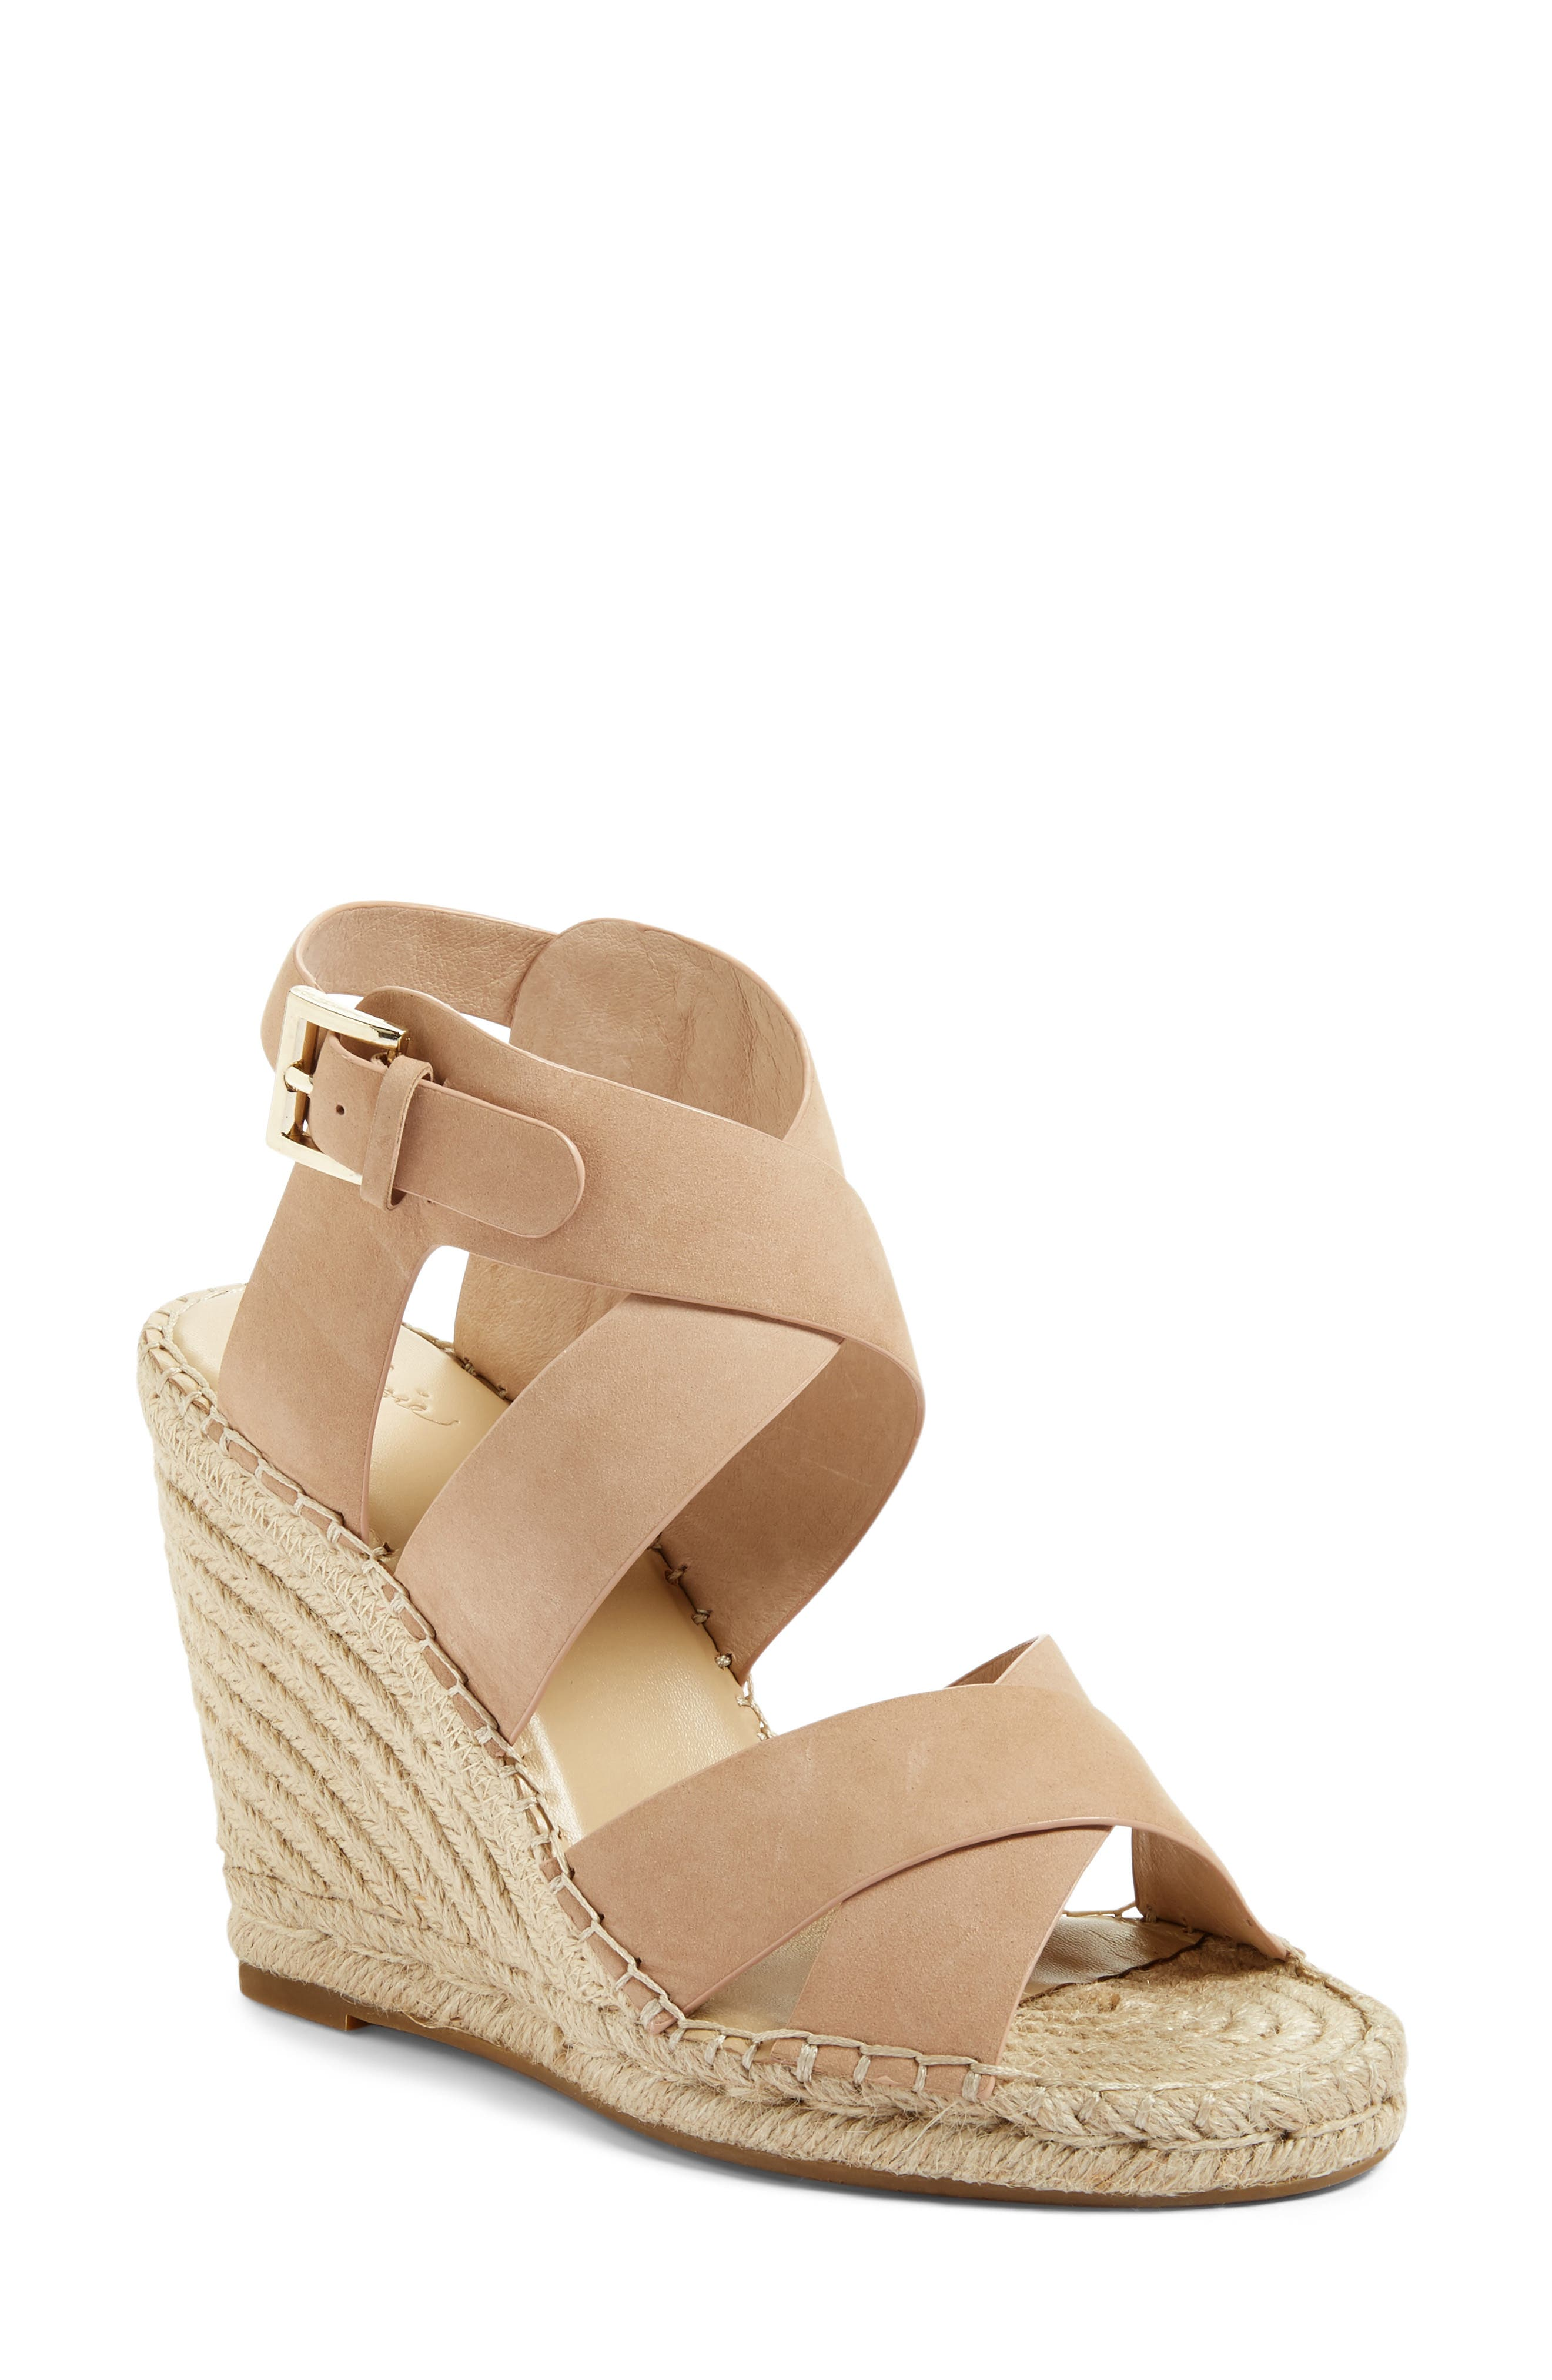 Main Image - Joie Kaelyn Espadrille Wedge Sandal (Women)